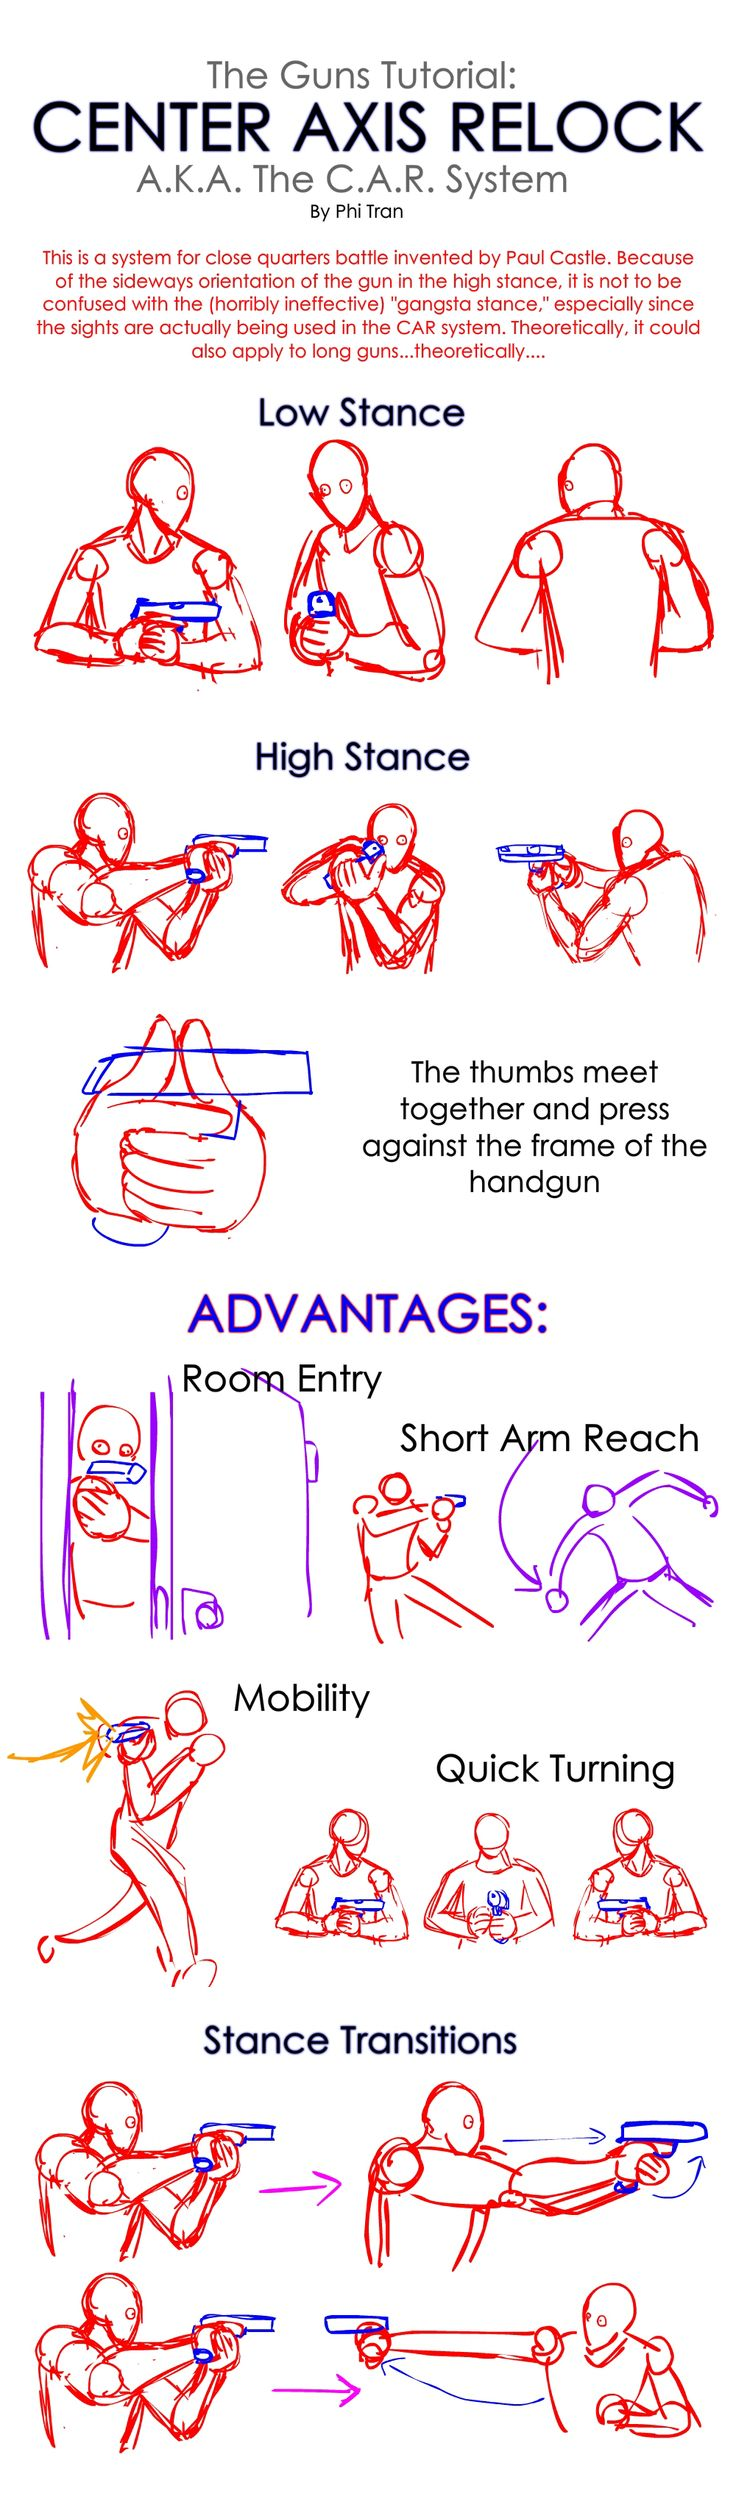 The Guns Mini-Tutorial: Center Axis Relock by PhiTuS.deviantart.com on @DeviantArt